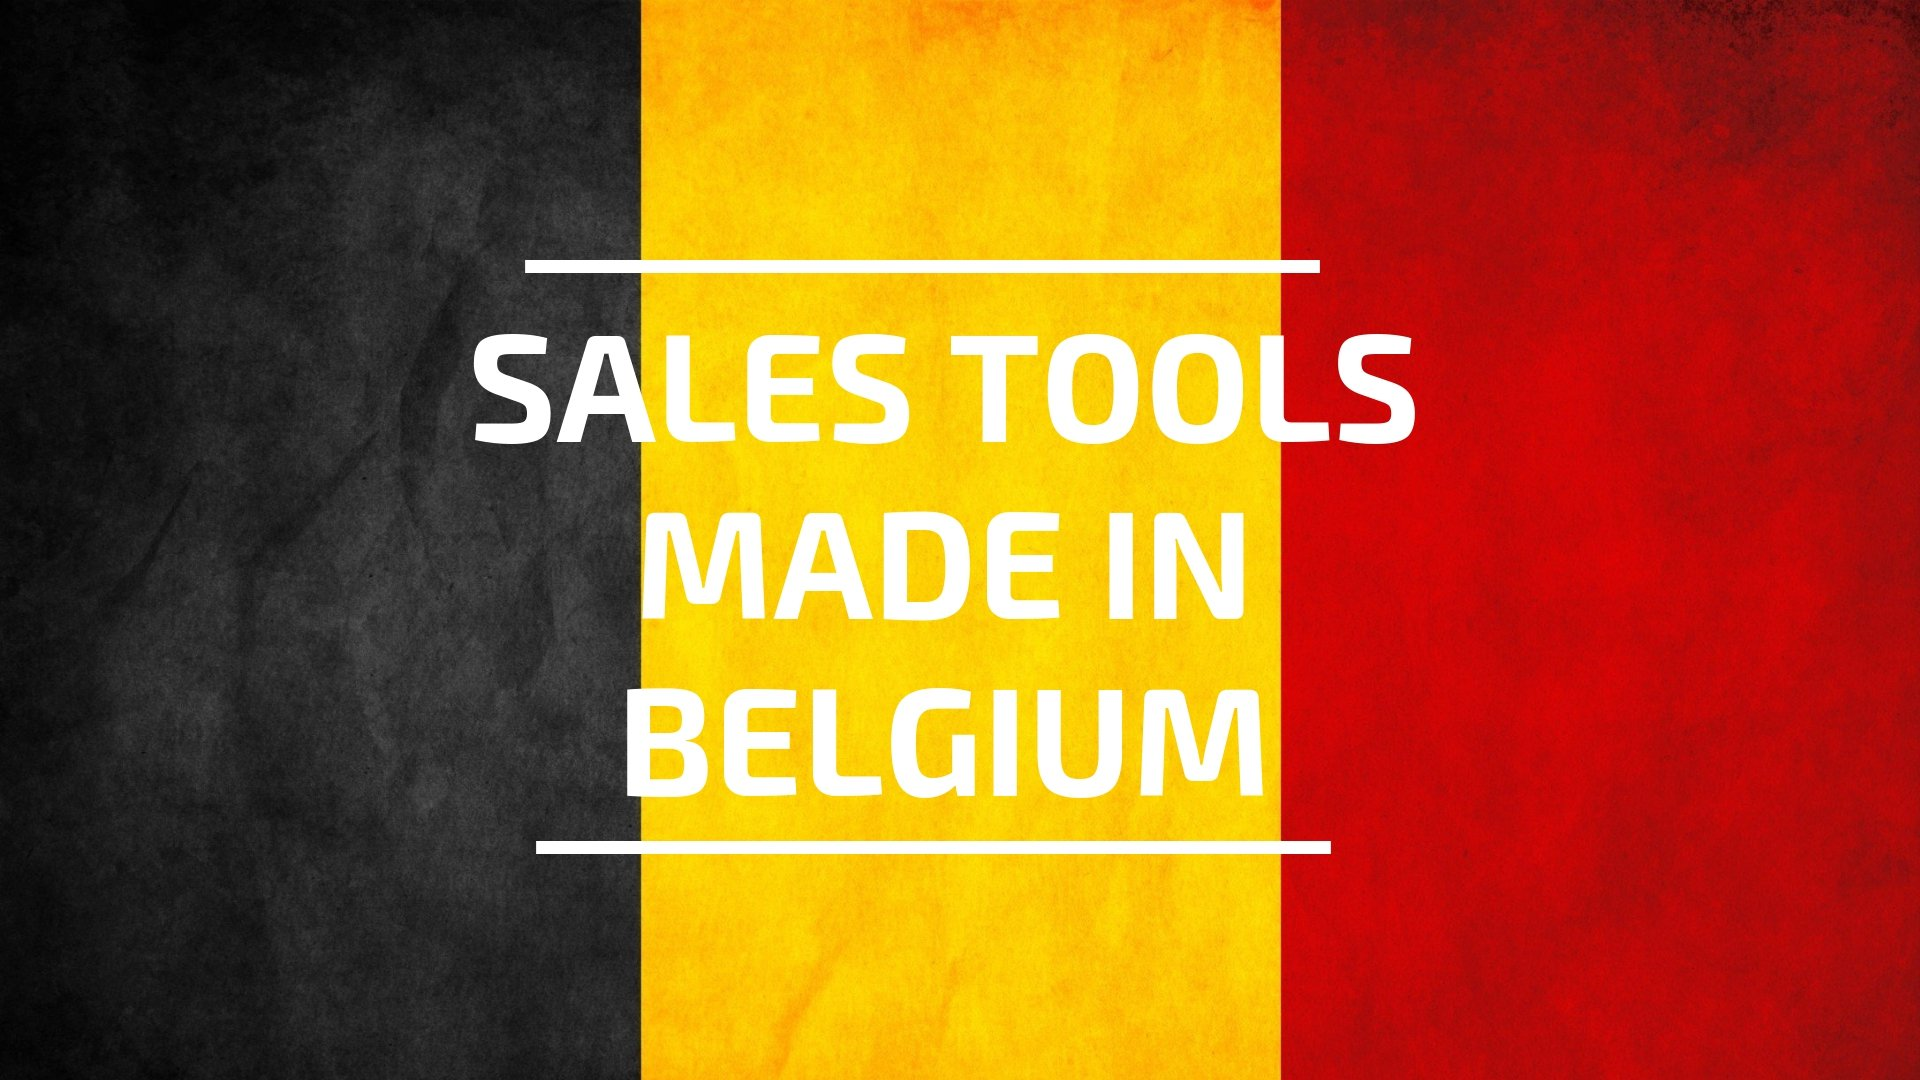 Sales Tools - Made in Belgium